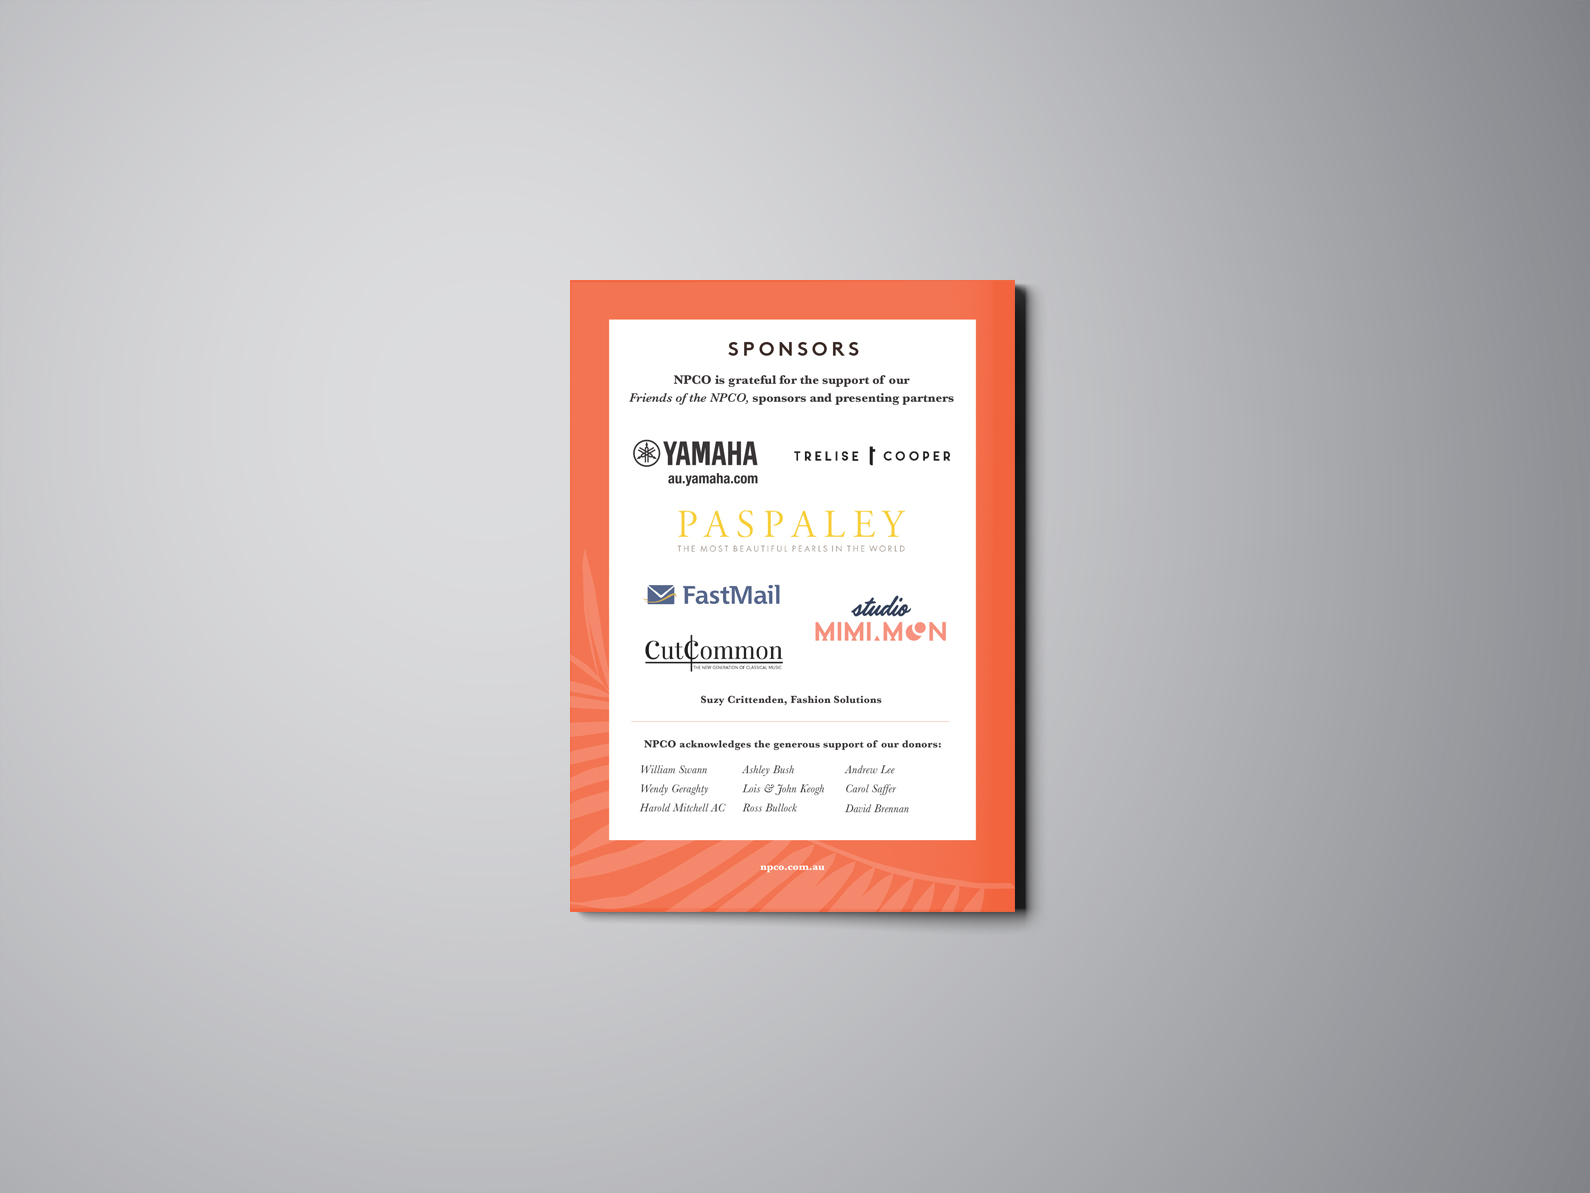 Studio-Mimi-Moon-New-Palm-Court-Orchestra-Brand-Identity-and-collateral-Concert-Booklet- Print design